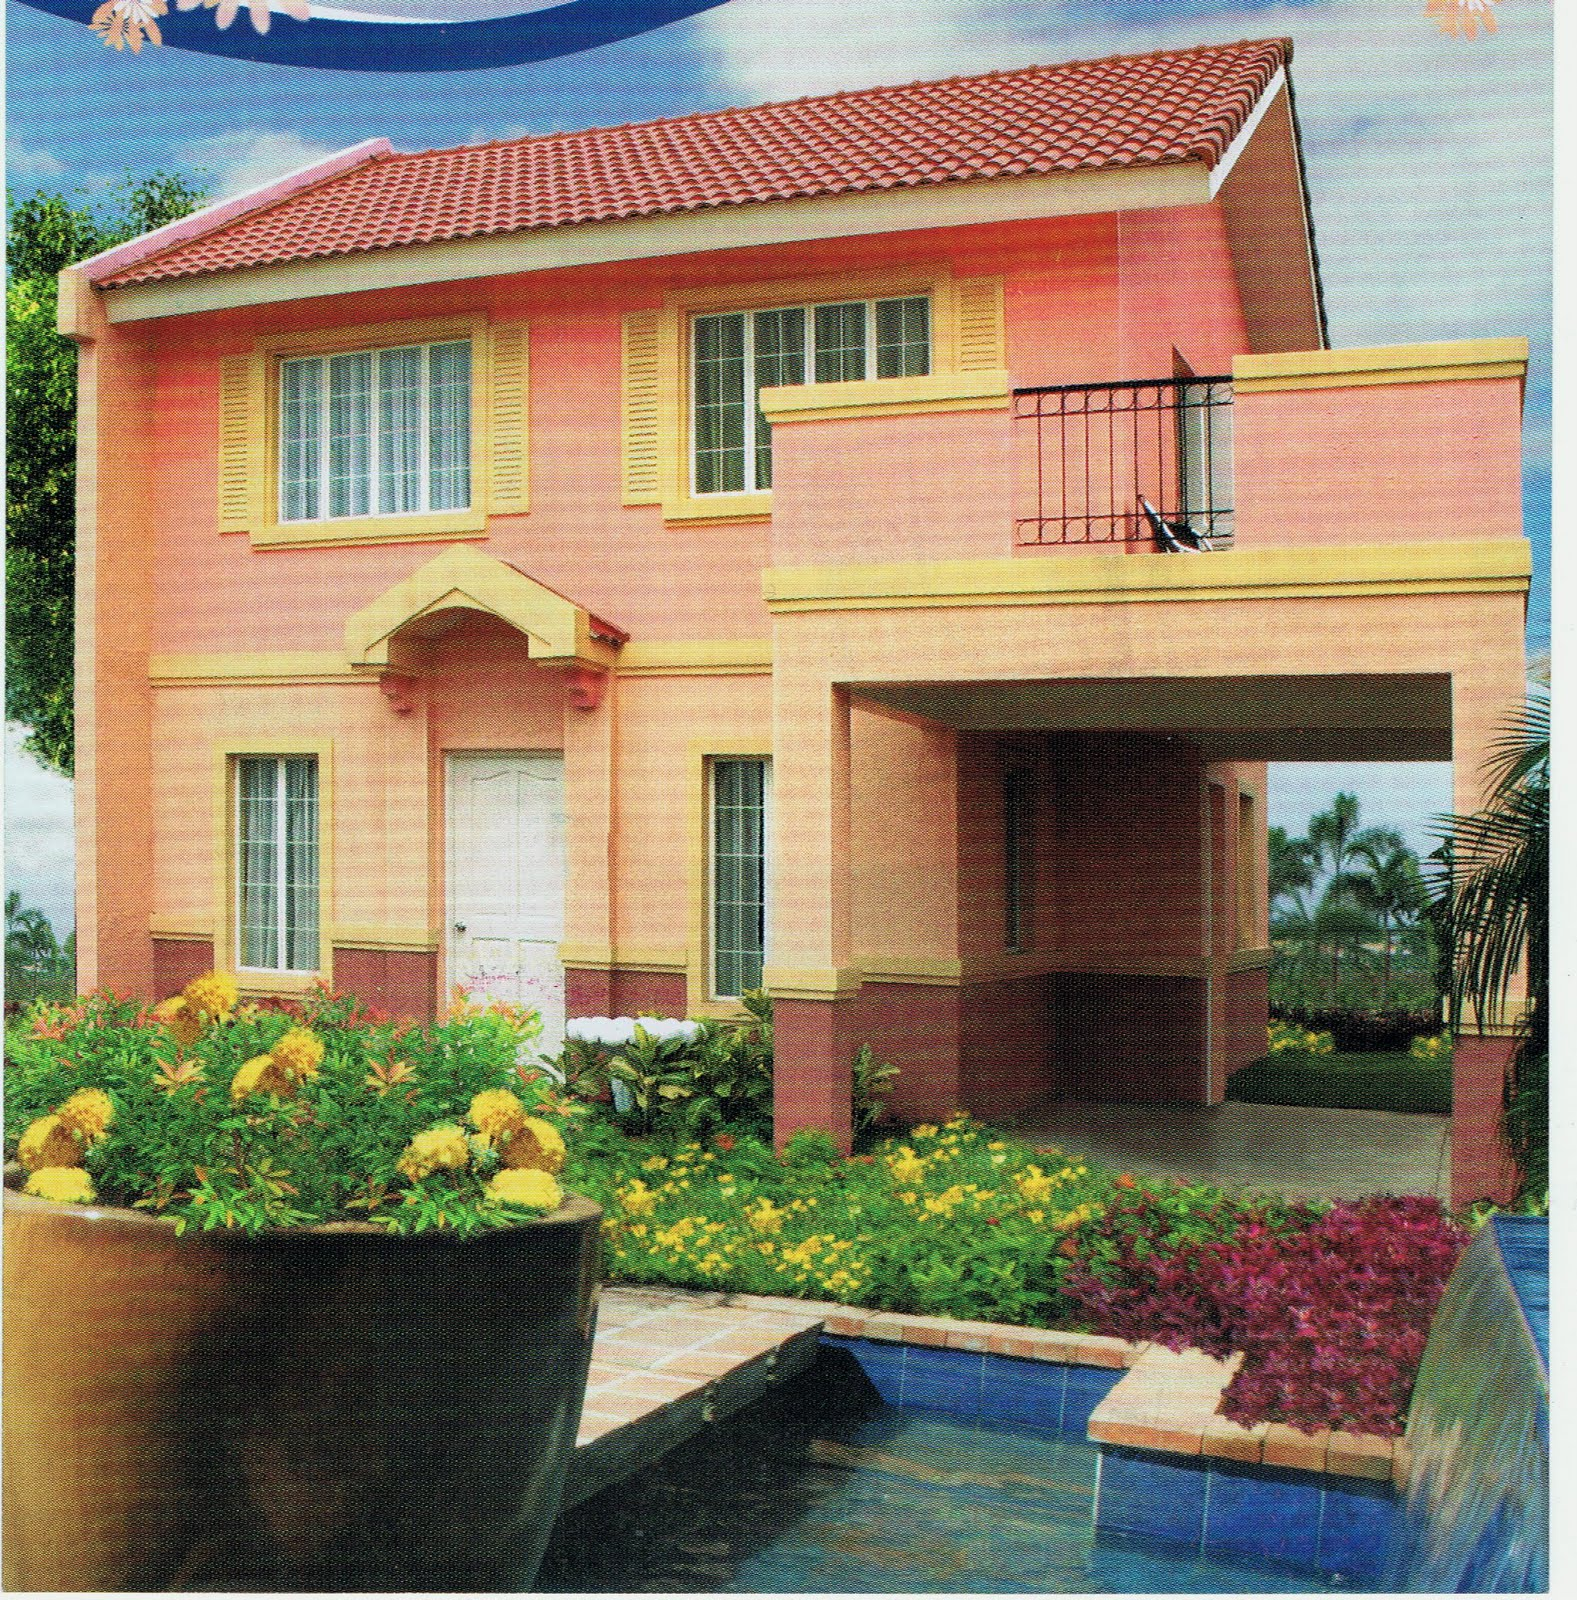 JR PROPERTIES AND DEVELOPERS, INC.: MODEL UNITS: TOWNHOUSES ... on townhouse elevations, townhouse flooring, basketball courts layouts, townhouse furniture layouts, townhouse kitchen layouts, townhouse apartment, townhouse with garage plans,